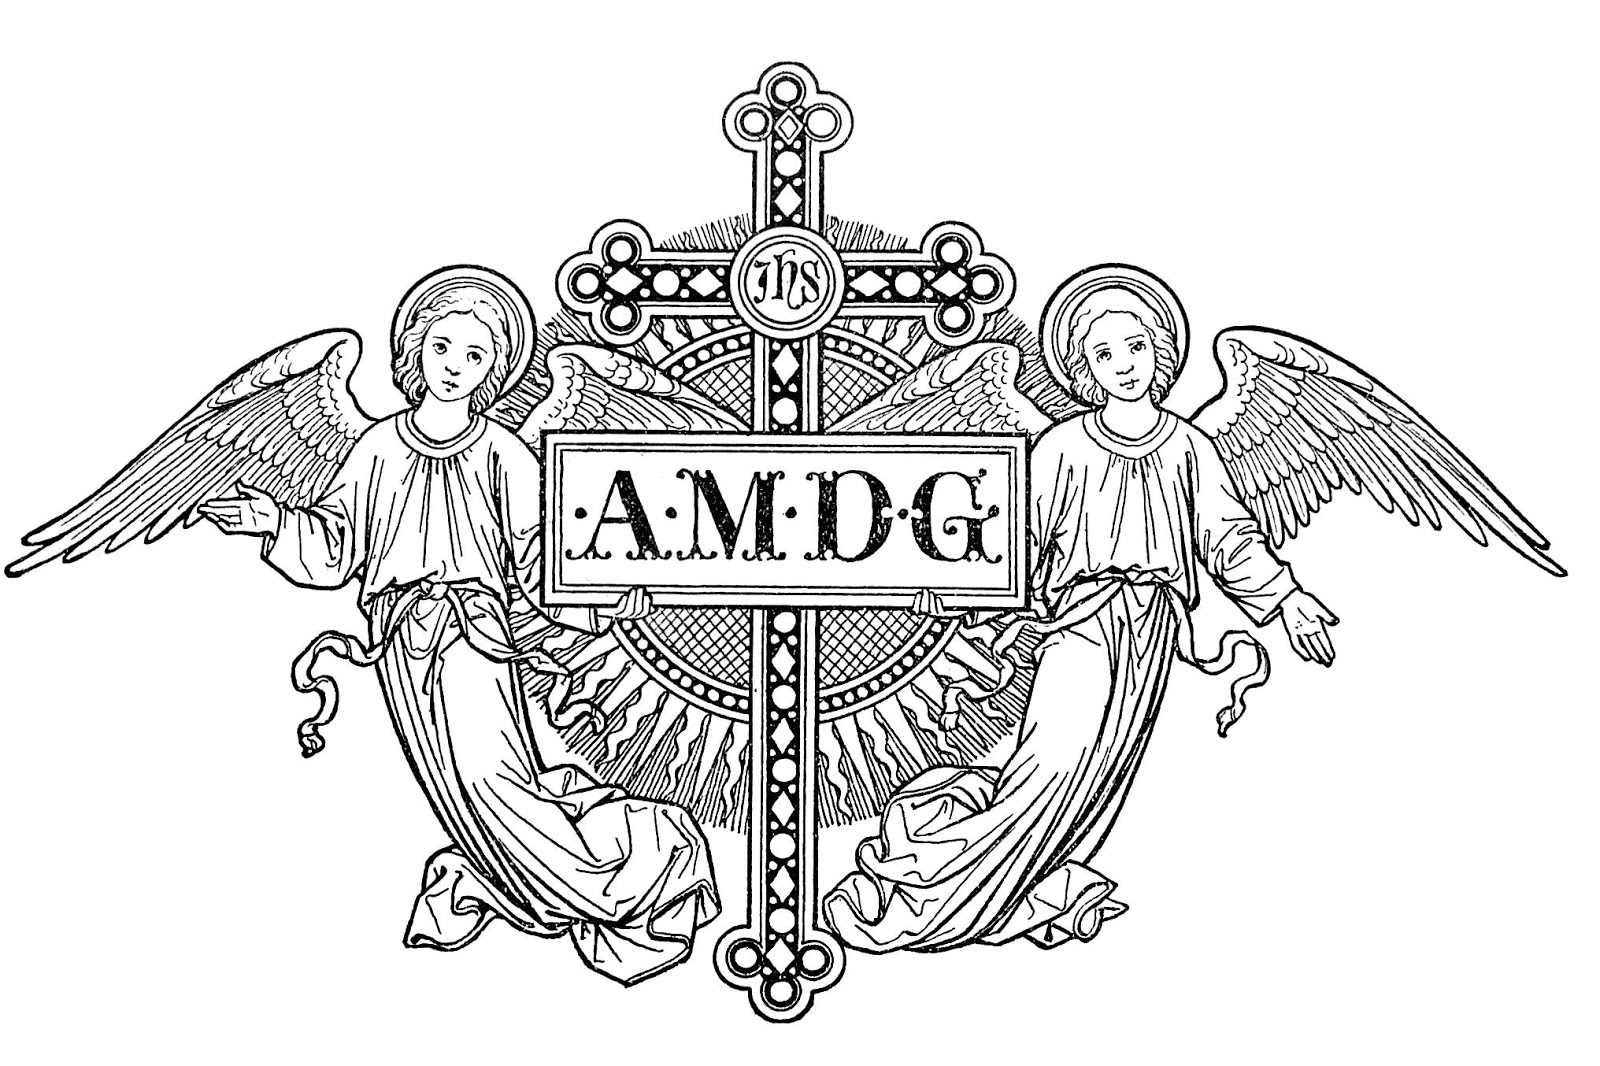 Ibo Et Non Redibo The Greater Glory Of God The Jesuit Meaning Of